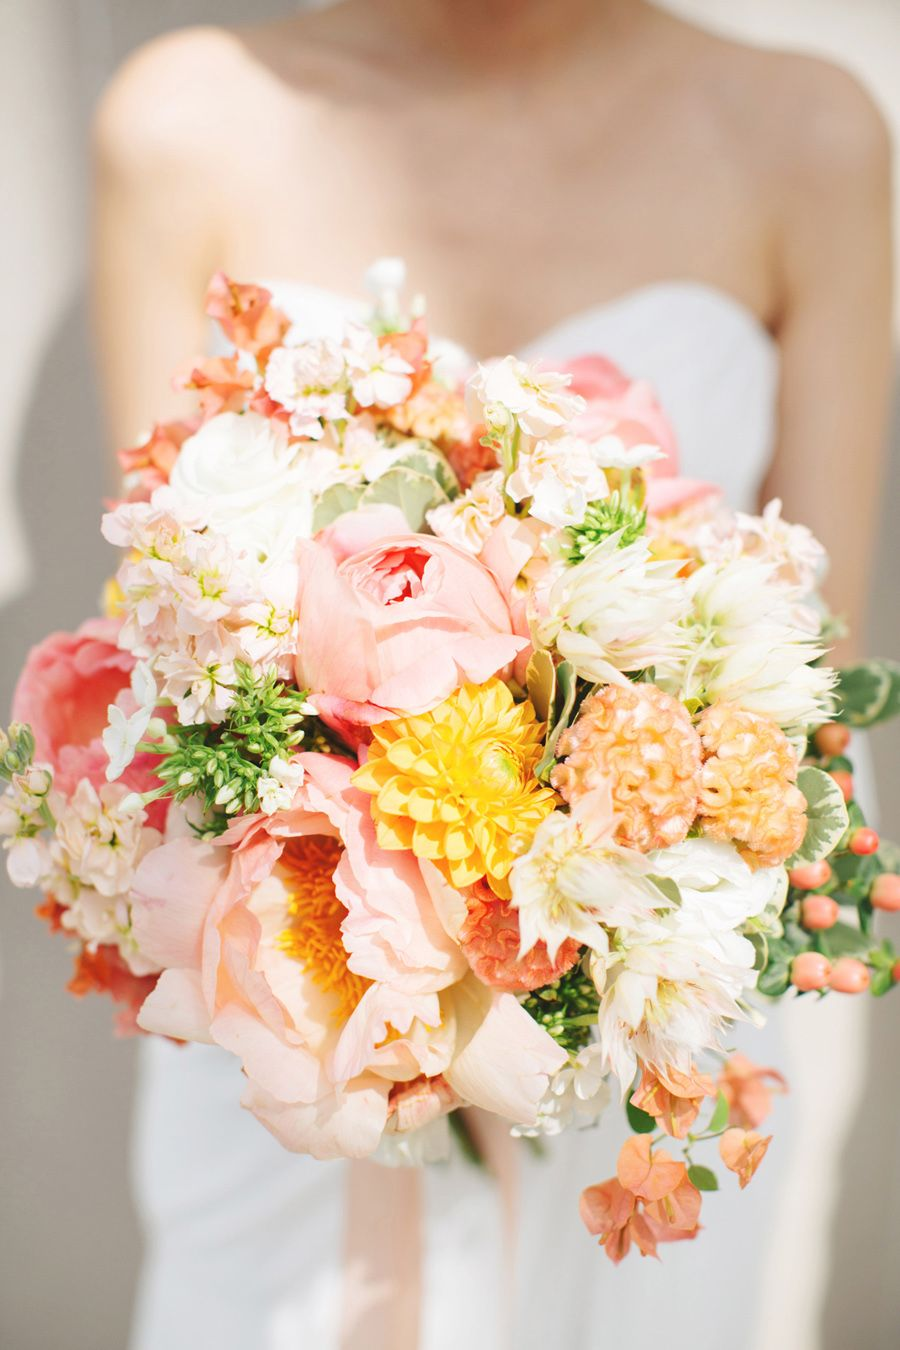 Let Your Love Blossom Singapore's Top Wedding Florists